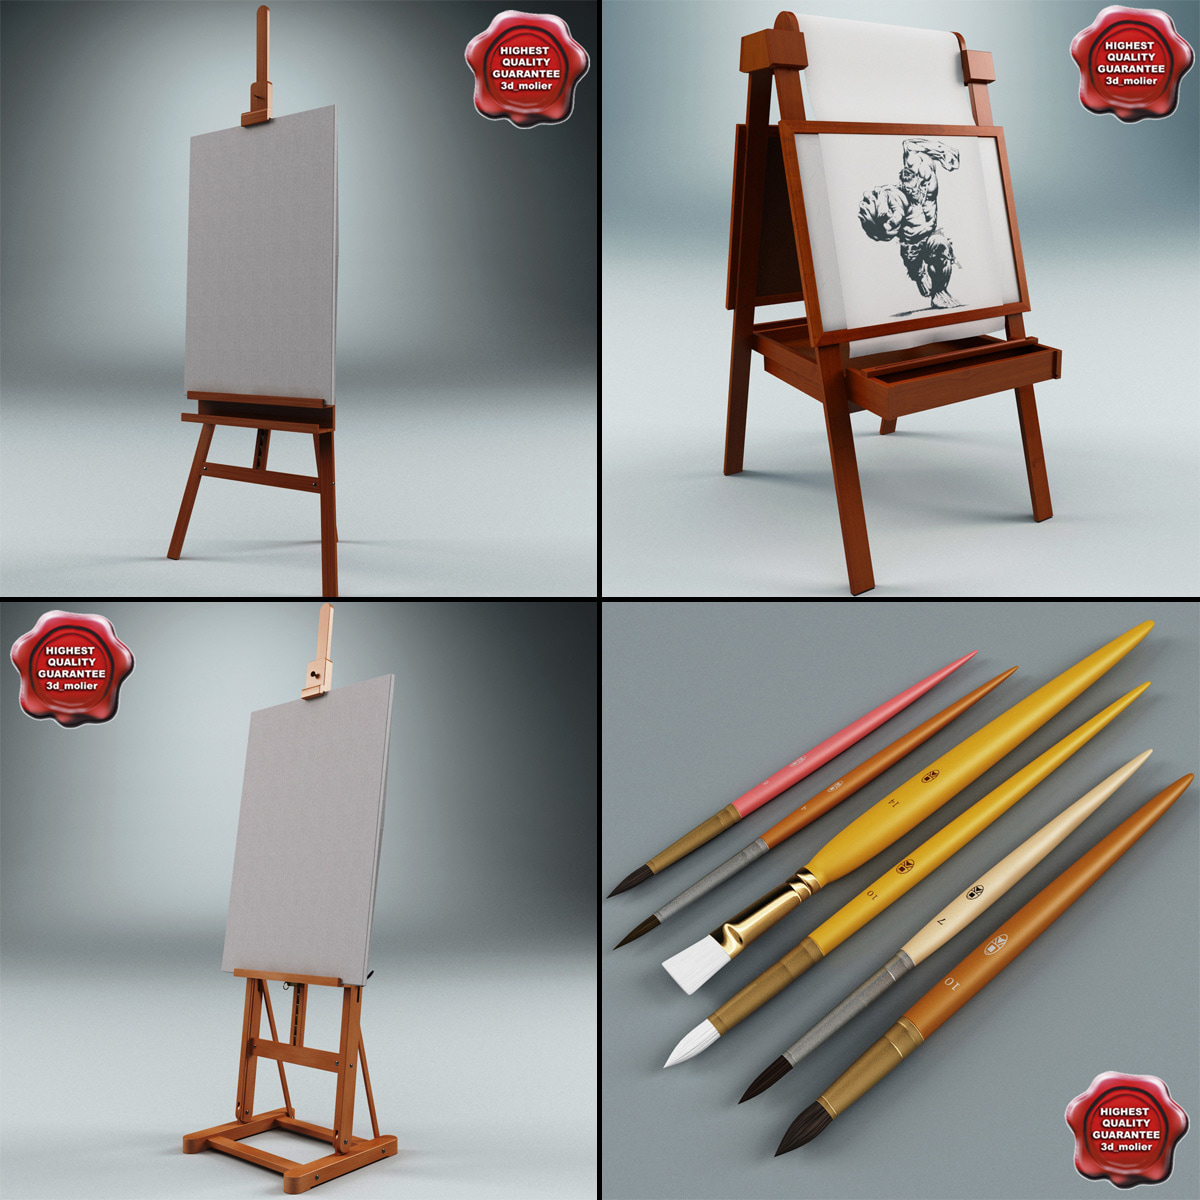 Studio_Easels_Collection_00.jpg